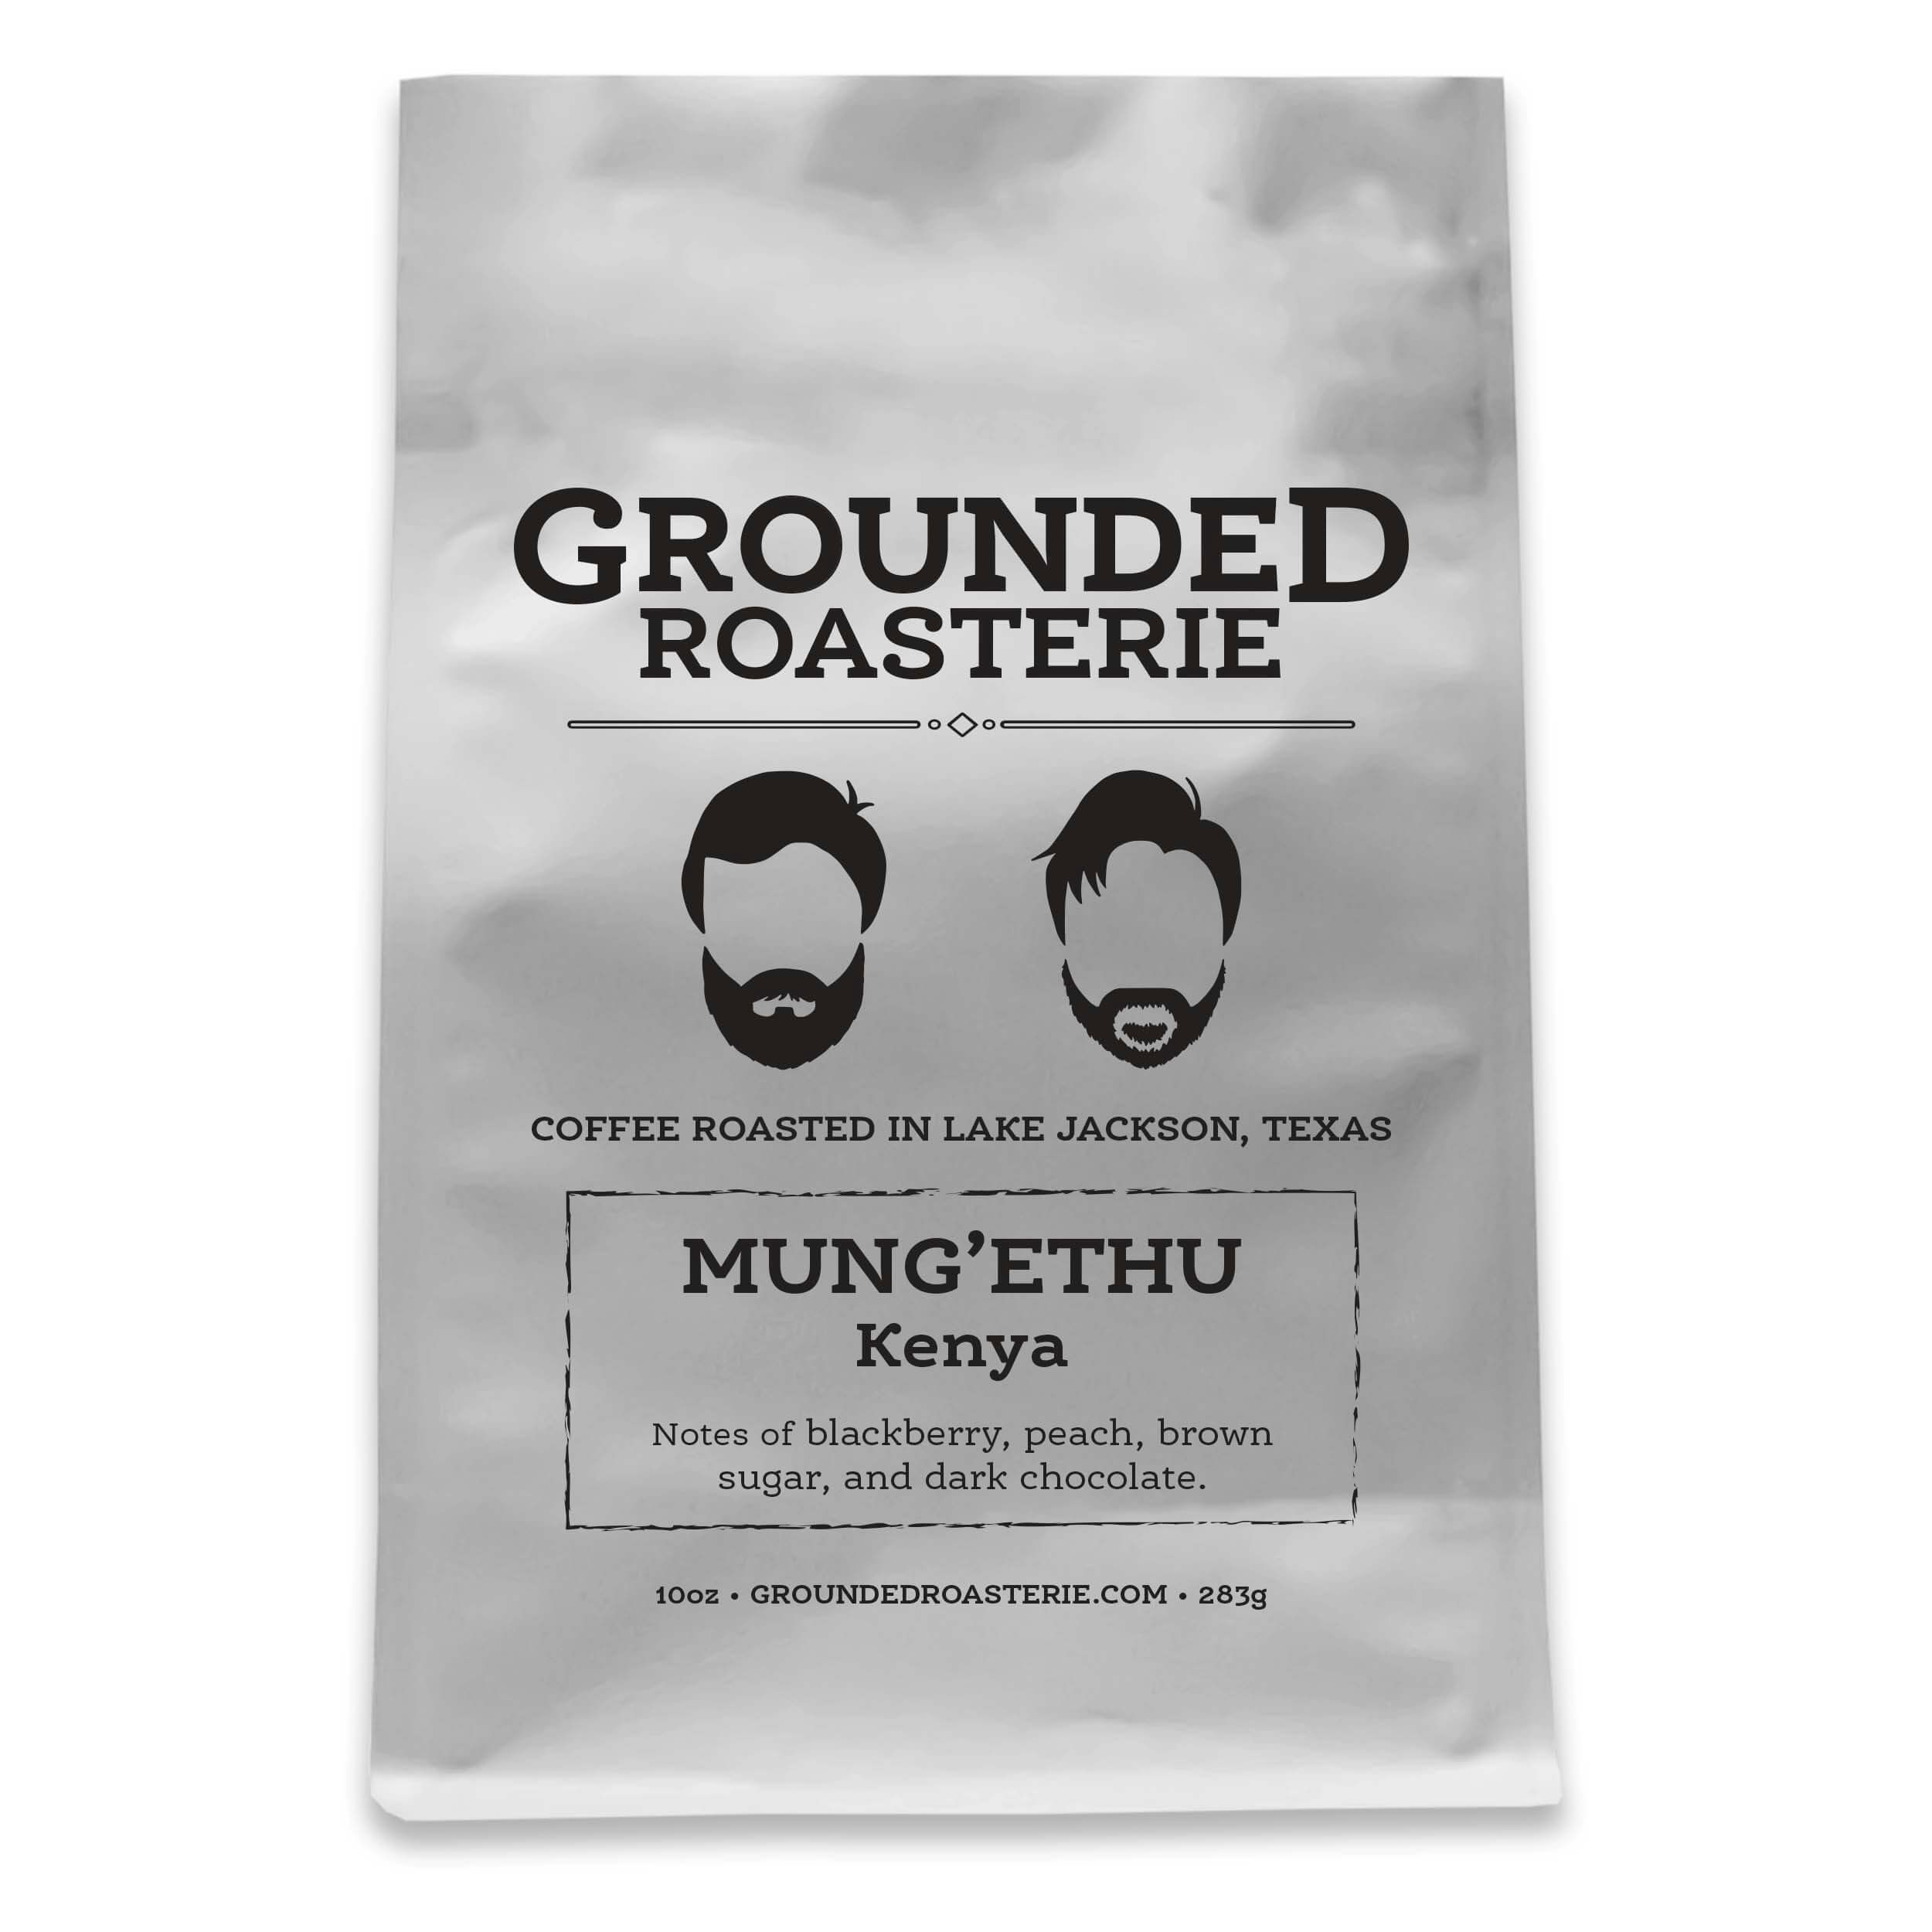 Kenya Mung'ethu from Grounded Roasterie